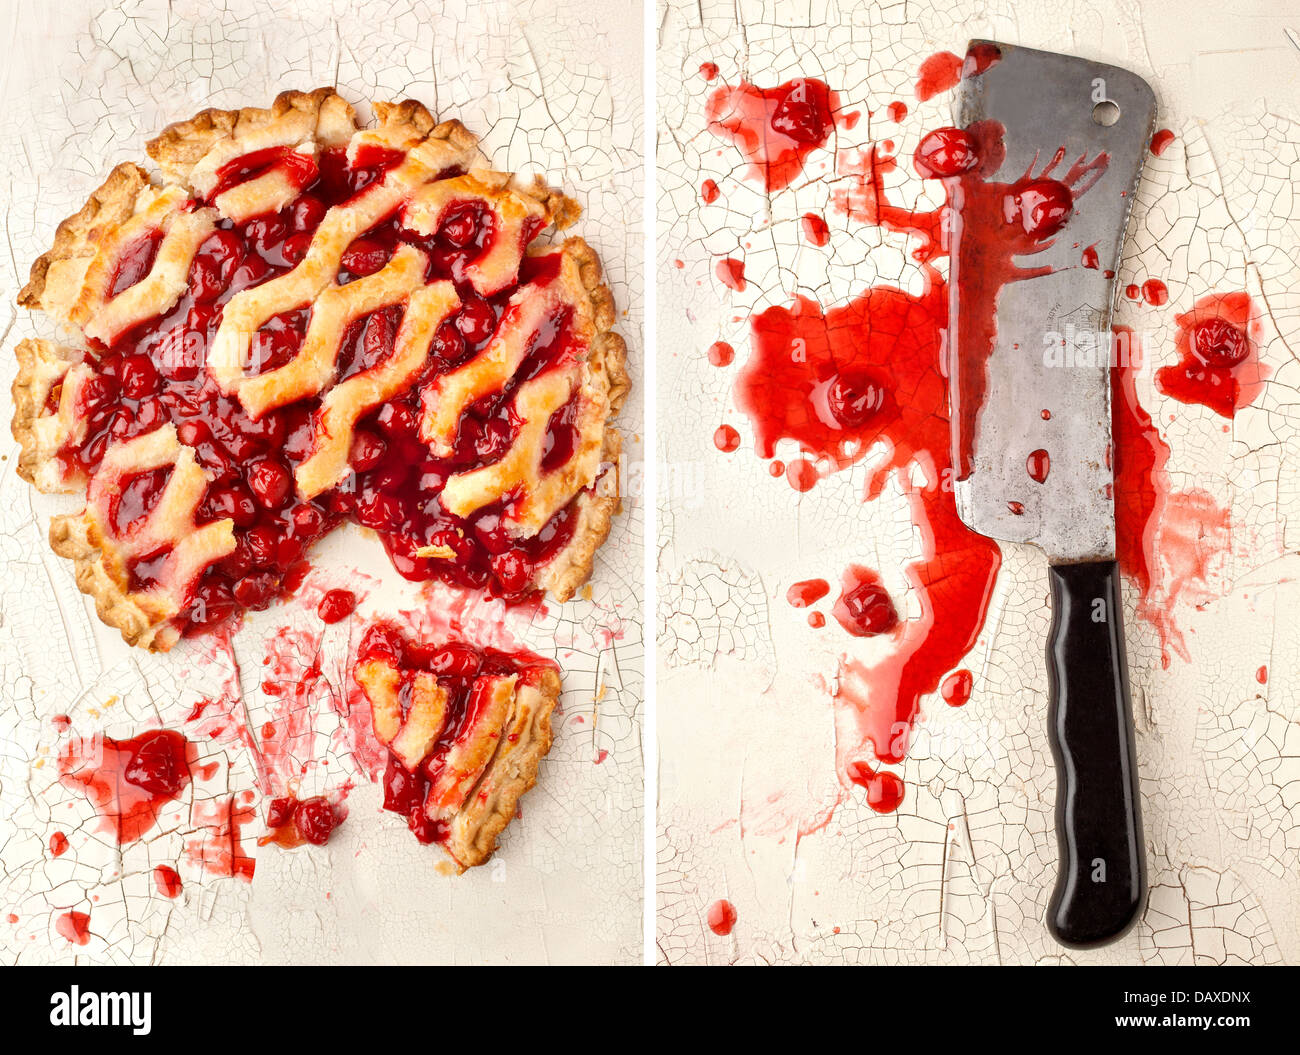 Cherry pie murdered by clever - Stock Image